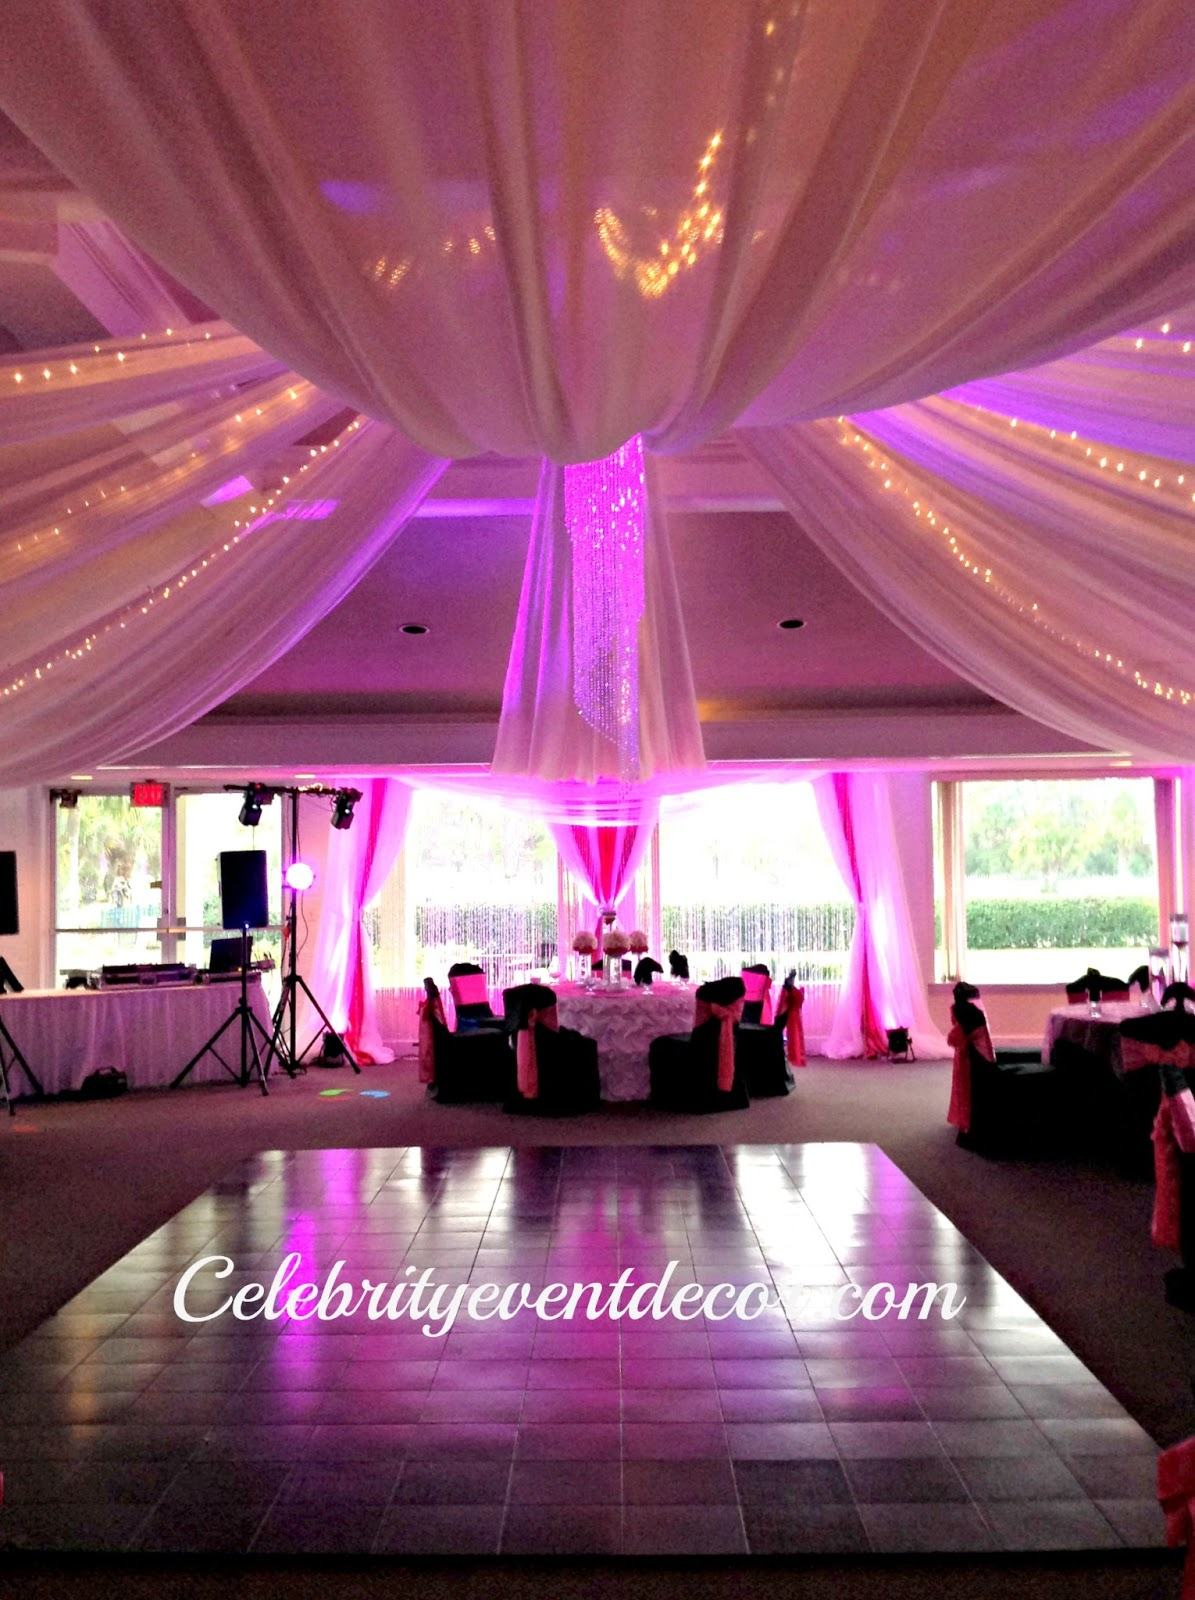 Celebrity event decor banquet hall llc march 2013 for Home sweet home party decorations